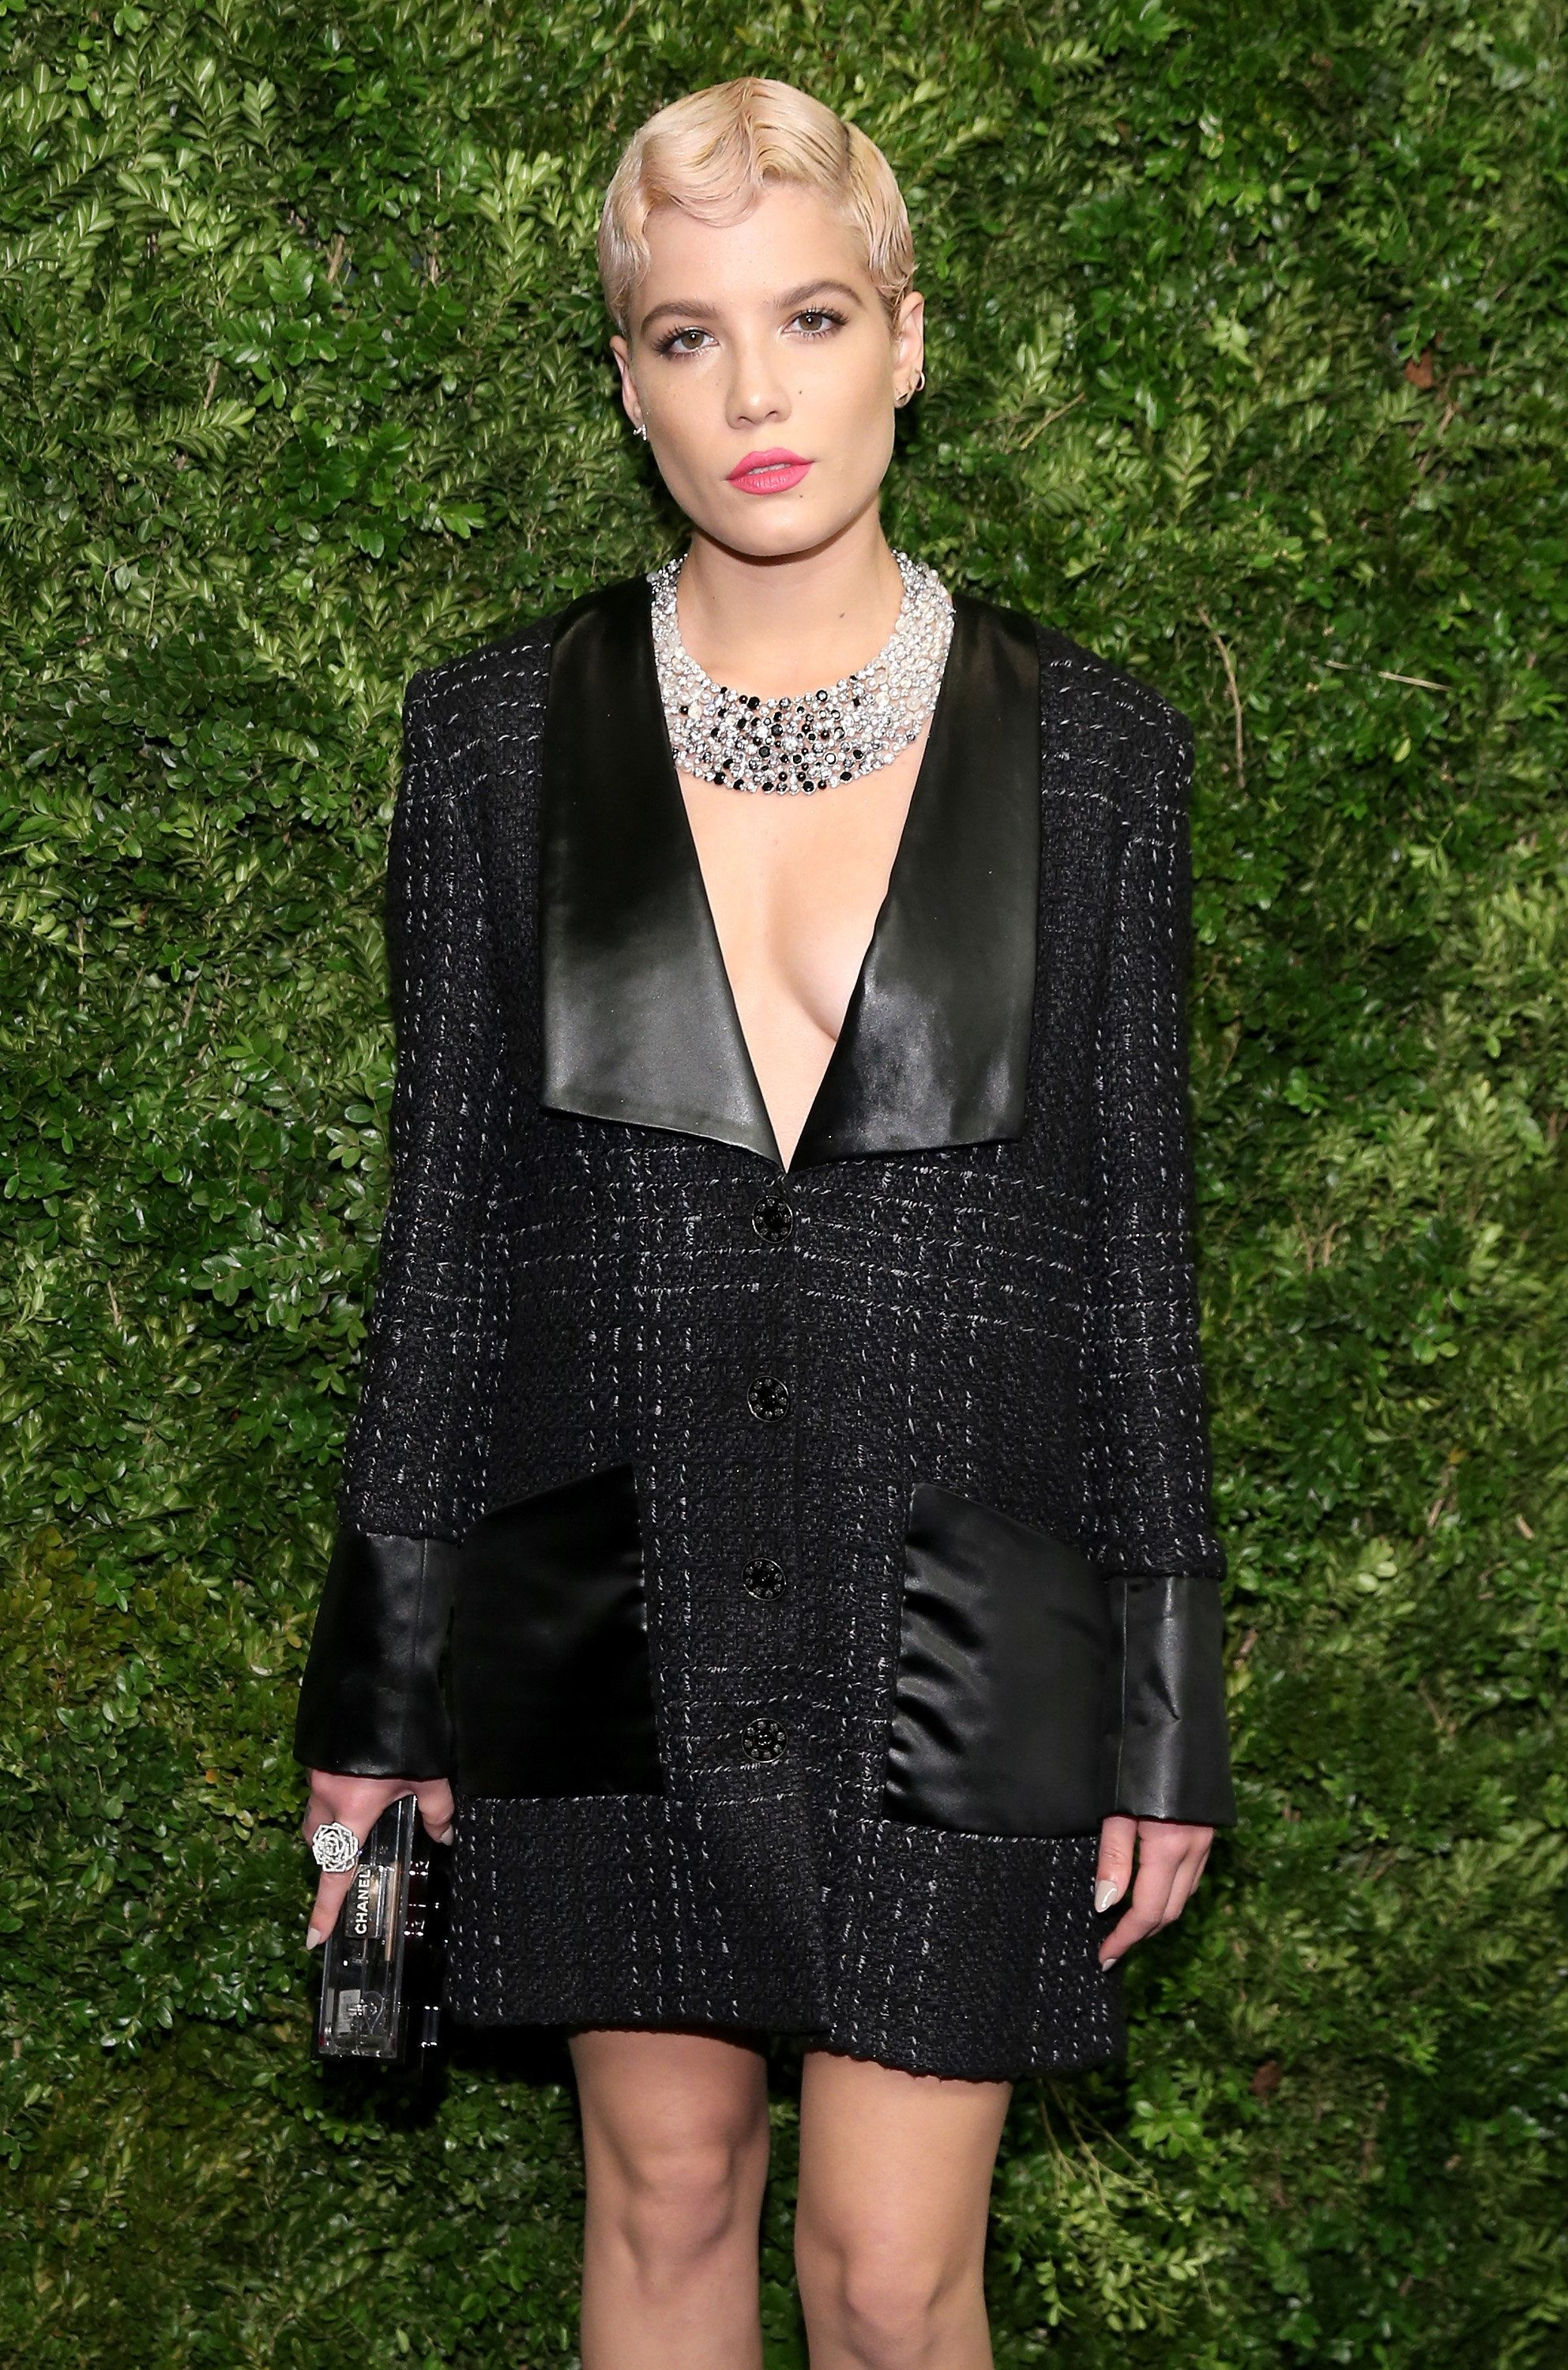 The star wearing a Chanel ensemble at a Museum of Modern Art film benefit honoring Cate Blanchett on Nov. 17 in New York City